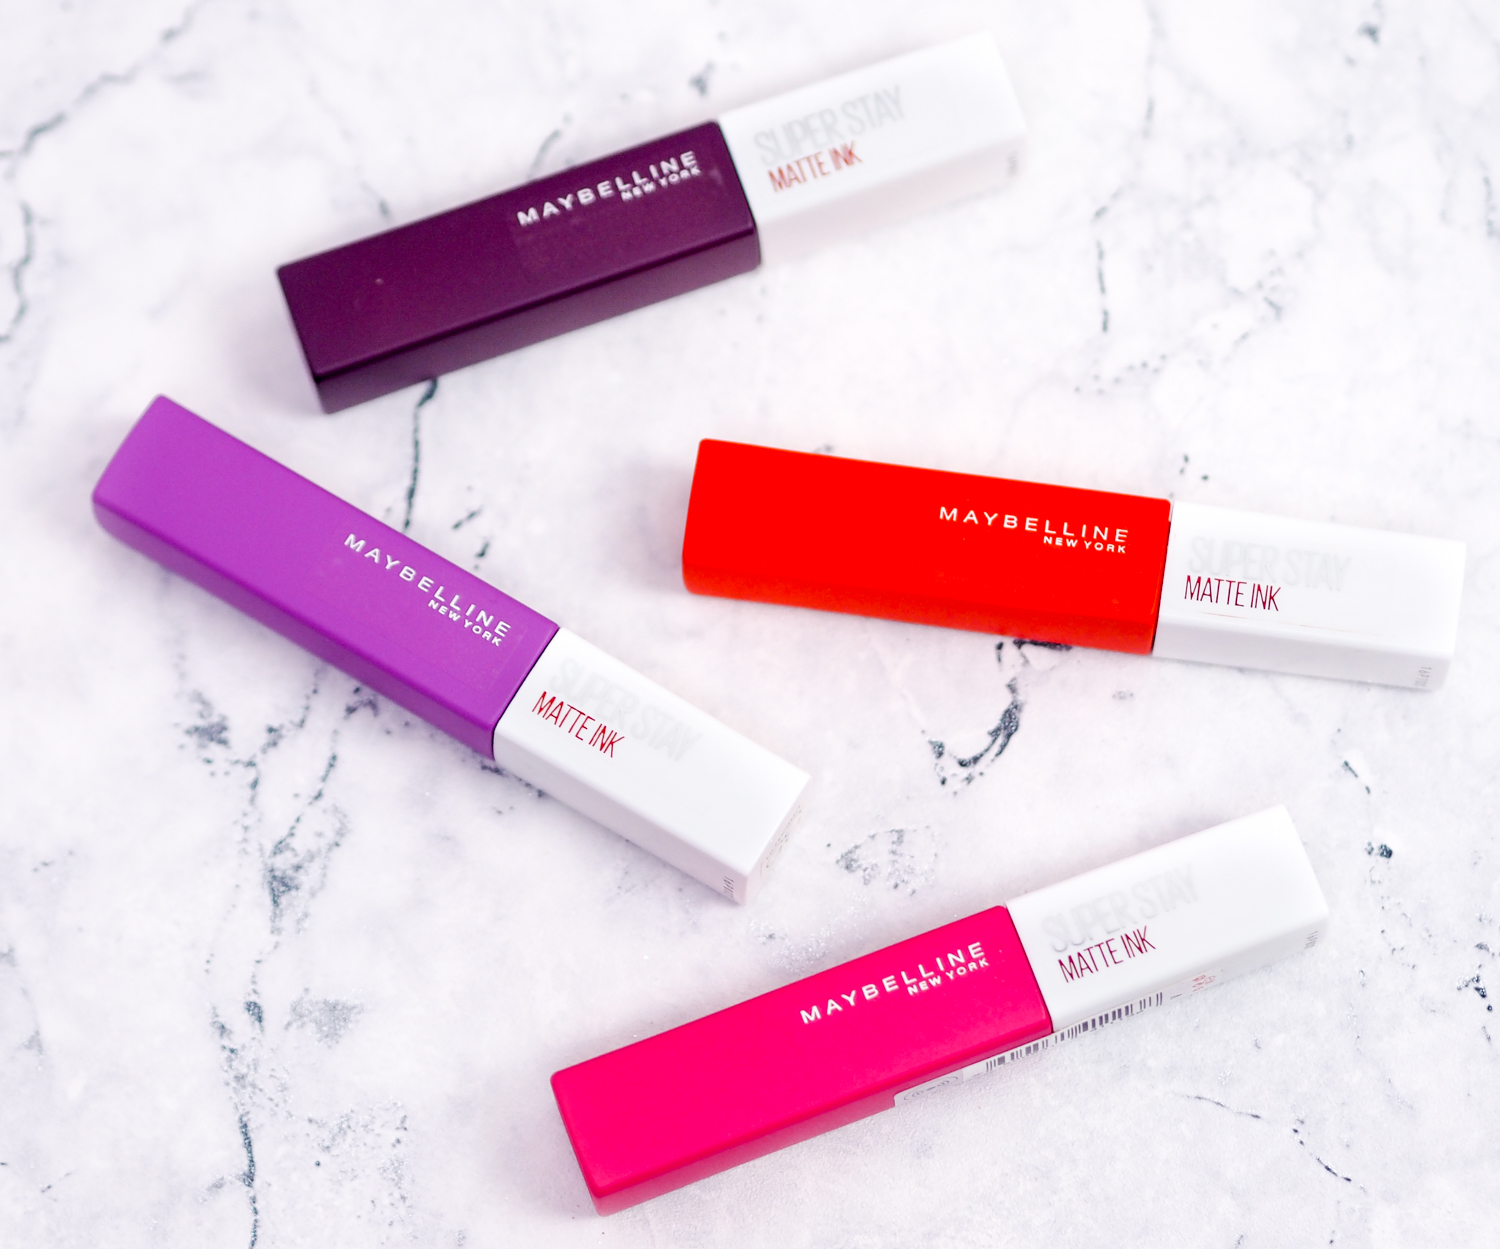 Maybelline SuperStay Matte Ink Liquid Lipstick Review - Curated By Kirstie is a Leicester Beauty, Fragrance and Gluten Free Blogger.